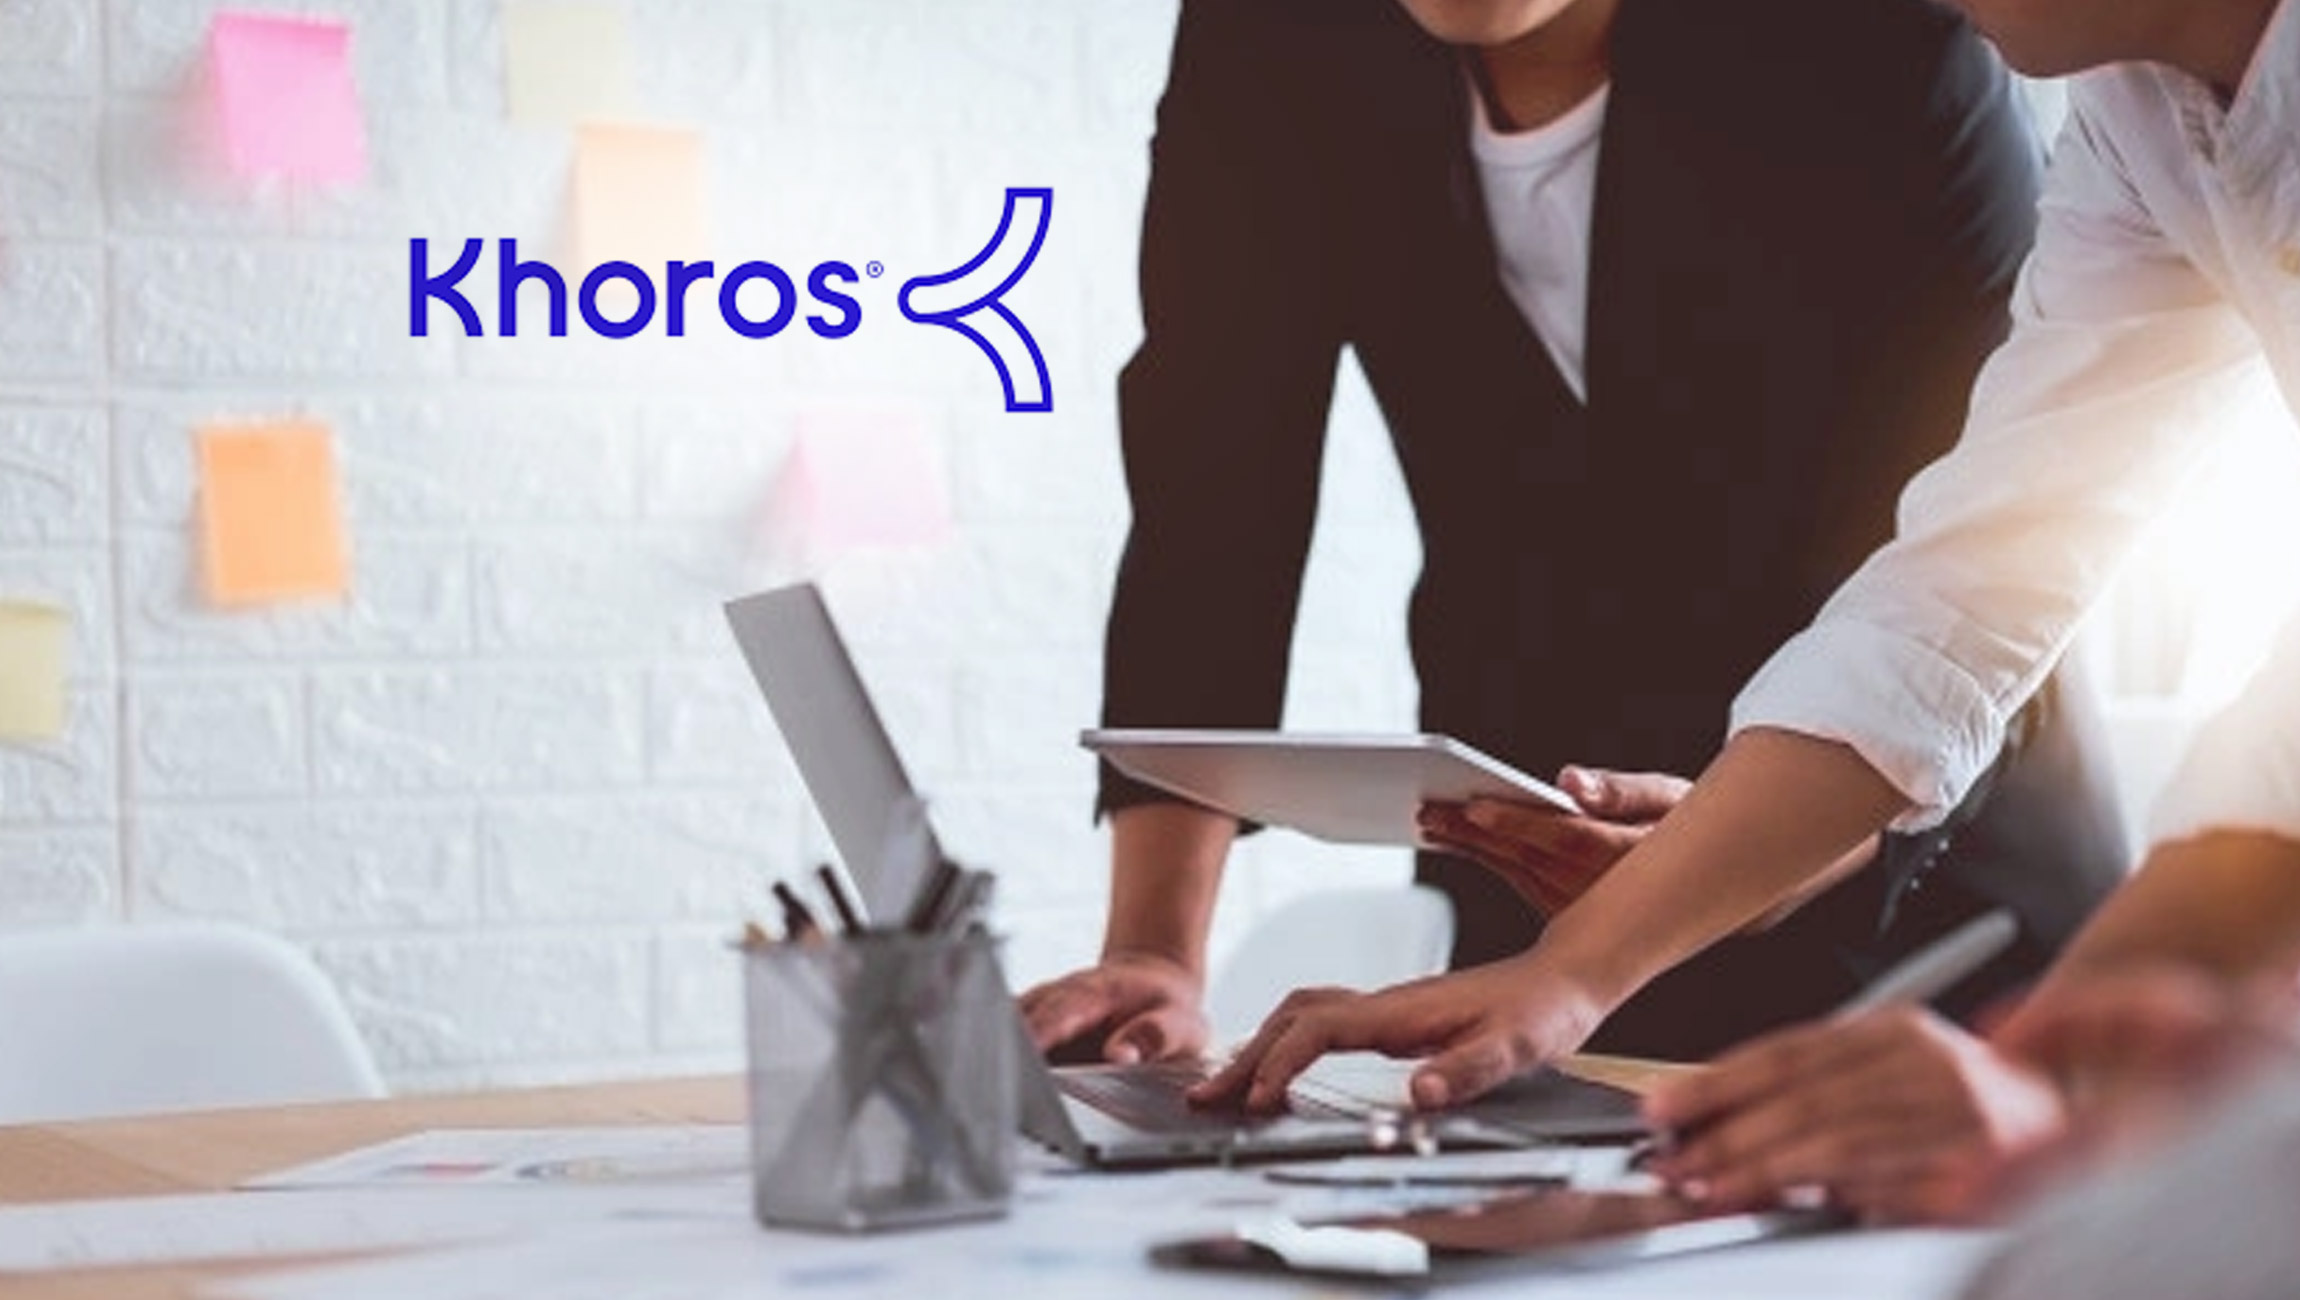 Khoros and Talkwalker Release Smart Social® Report to Help Brands Market to Gen Z with Actionable Data & CX Insights 1